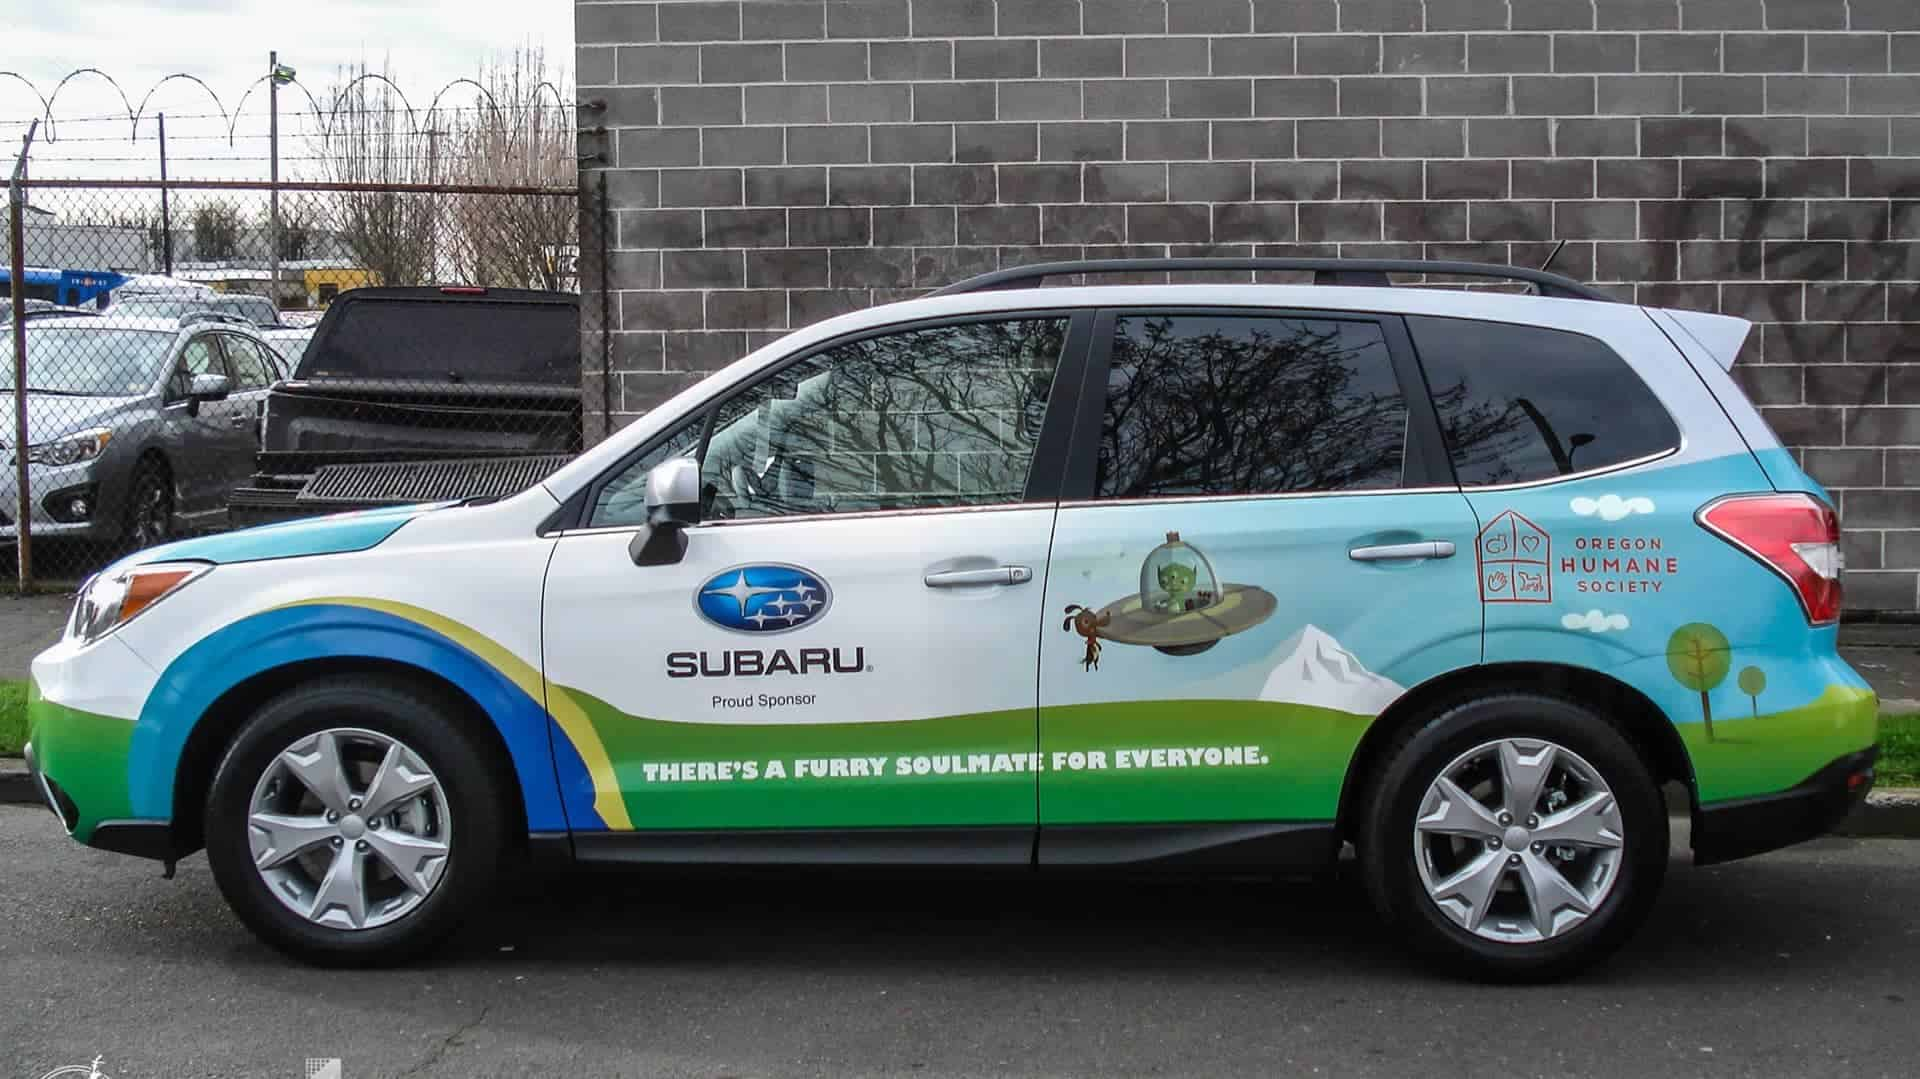 Partial wrap on a subaru forester for Oregon Humane Society